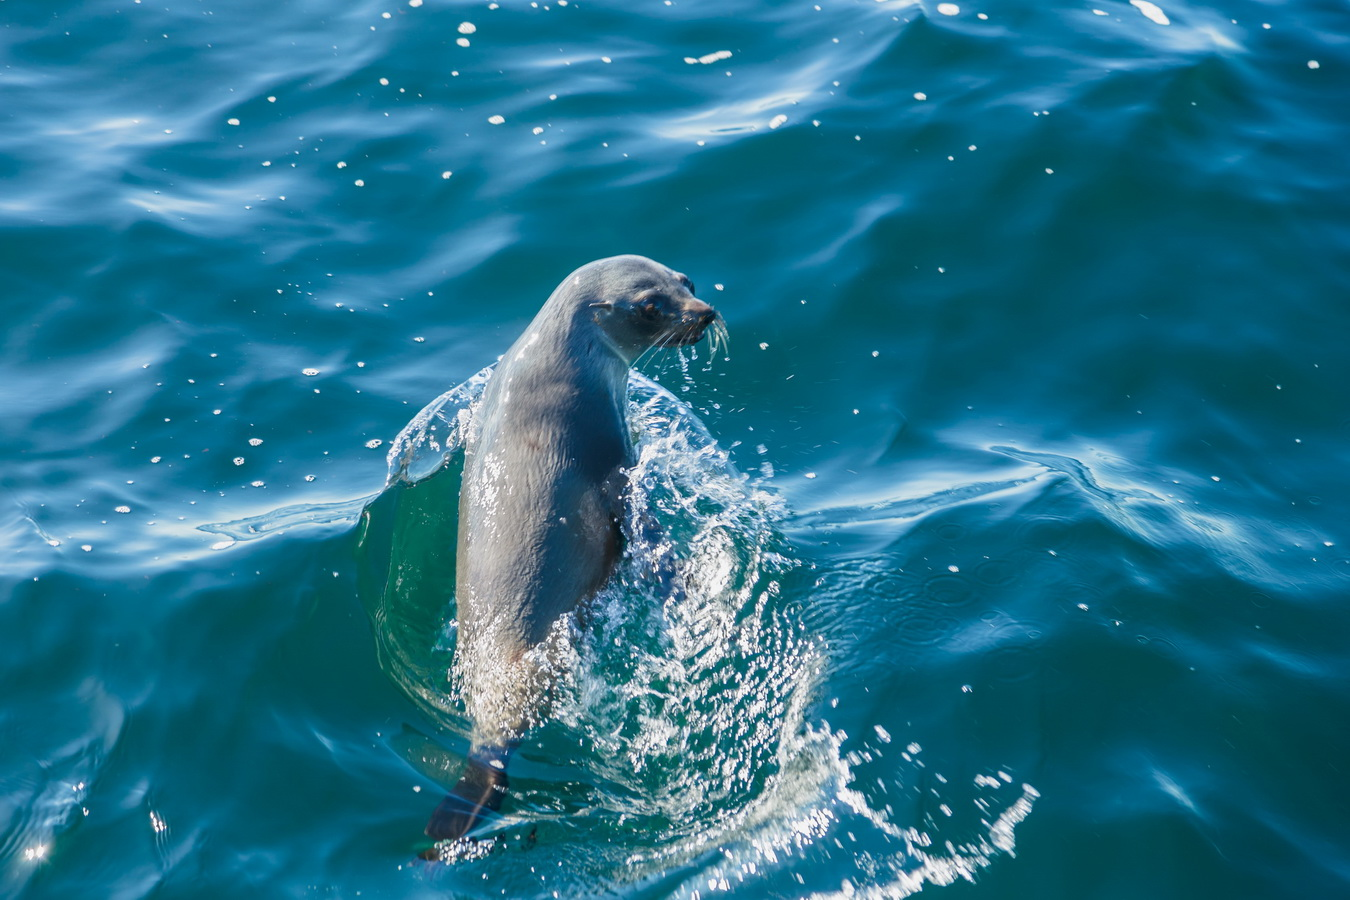 seal, Kaikoura,Whale Watch Tour, South Island ,New Zealand